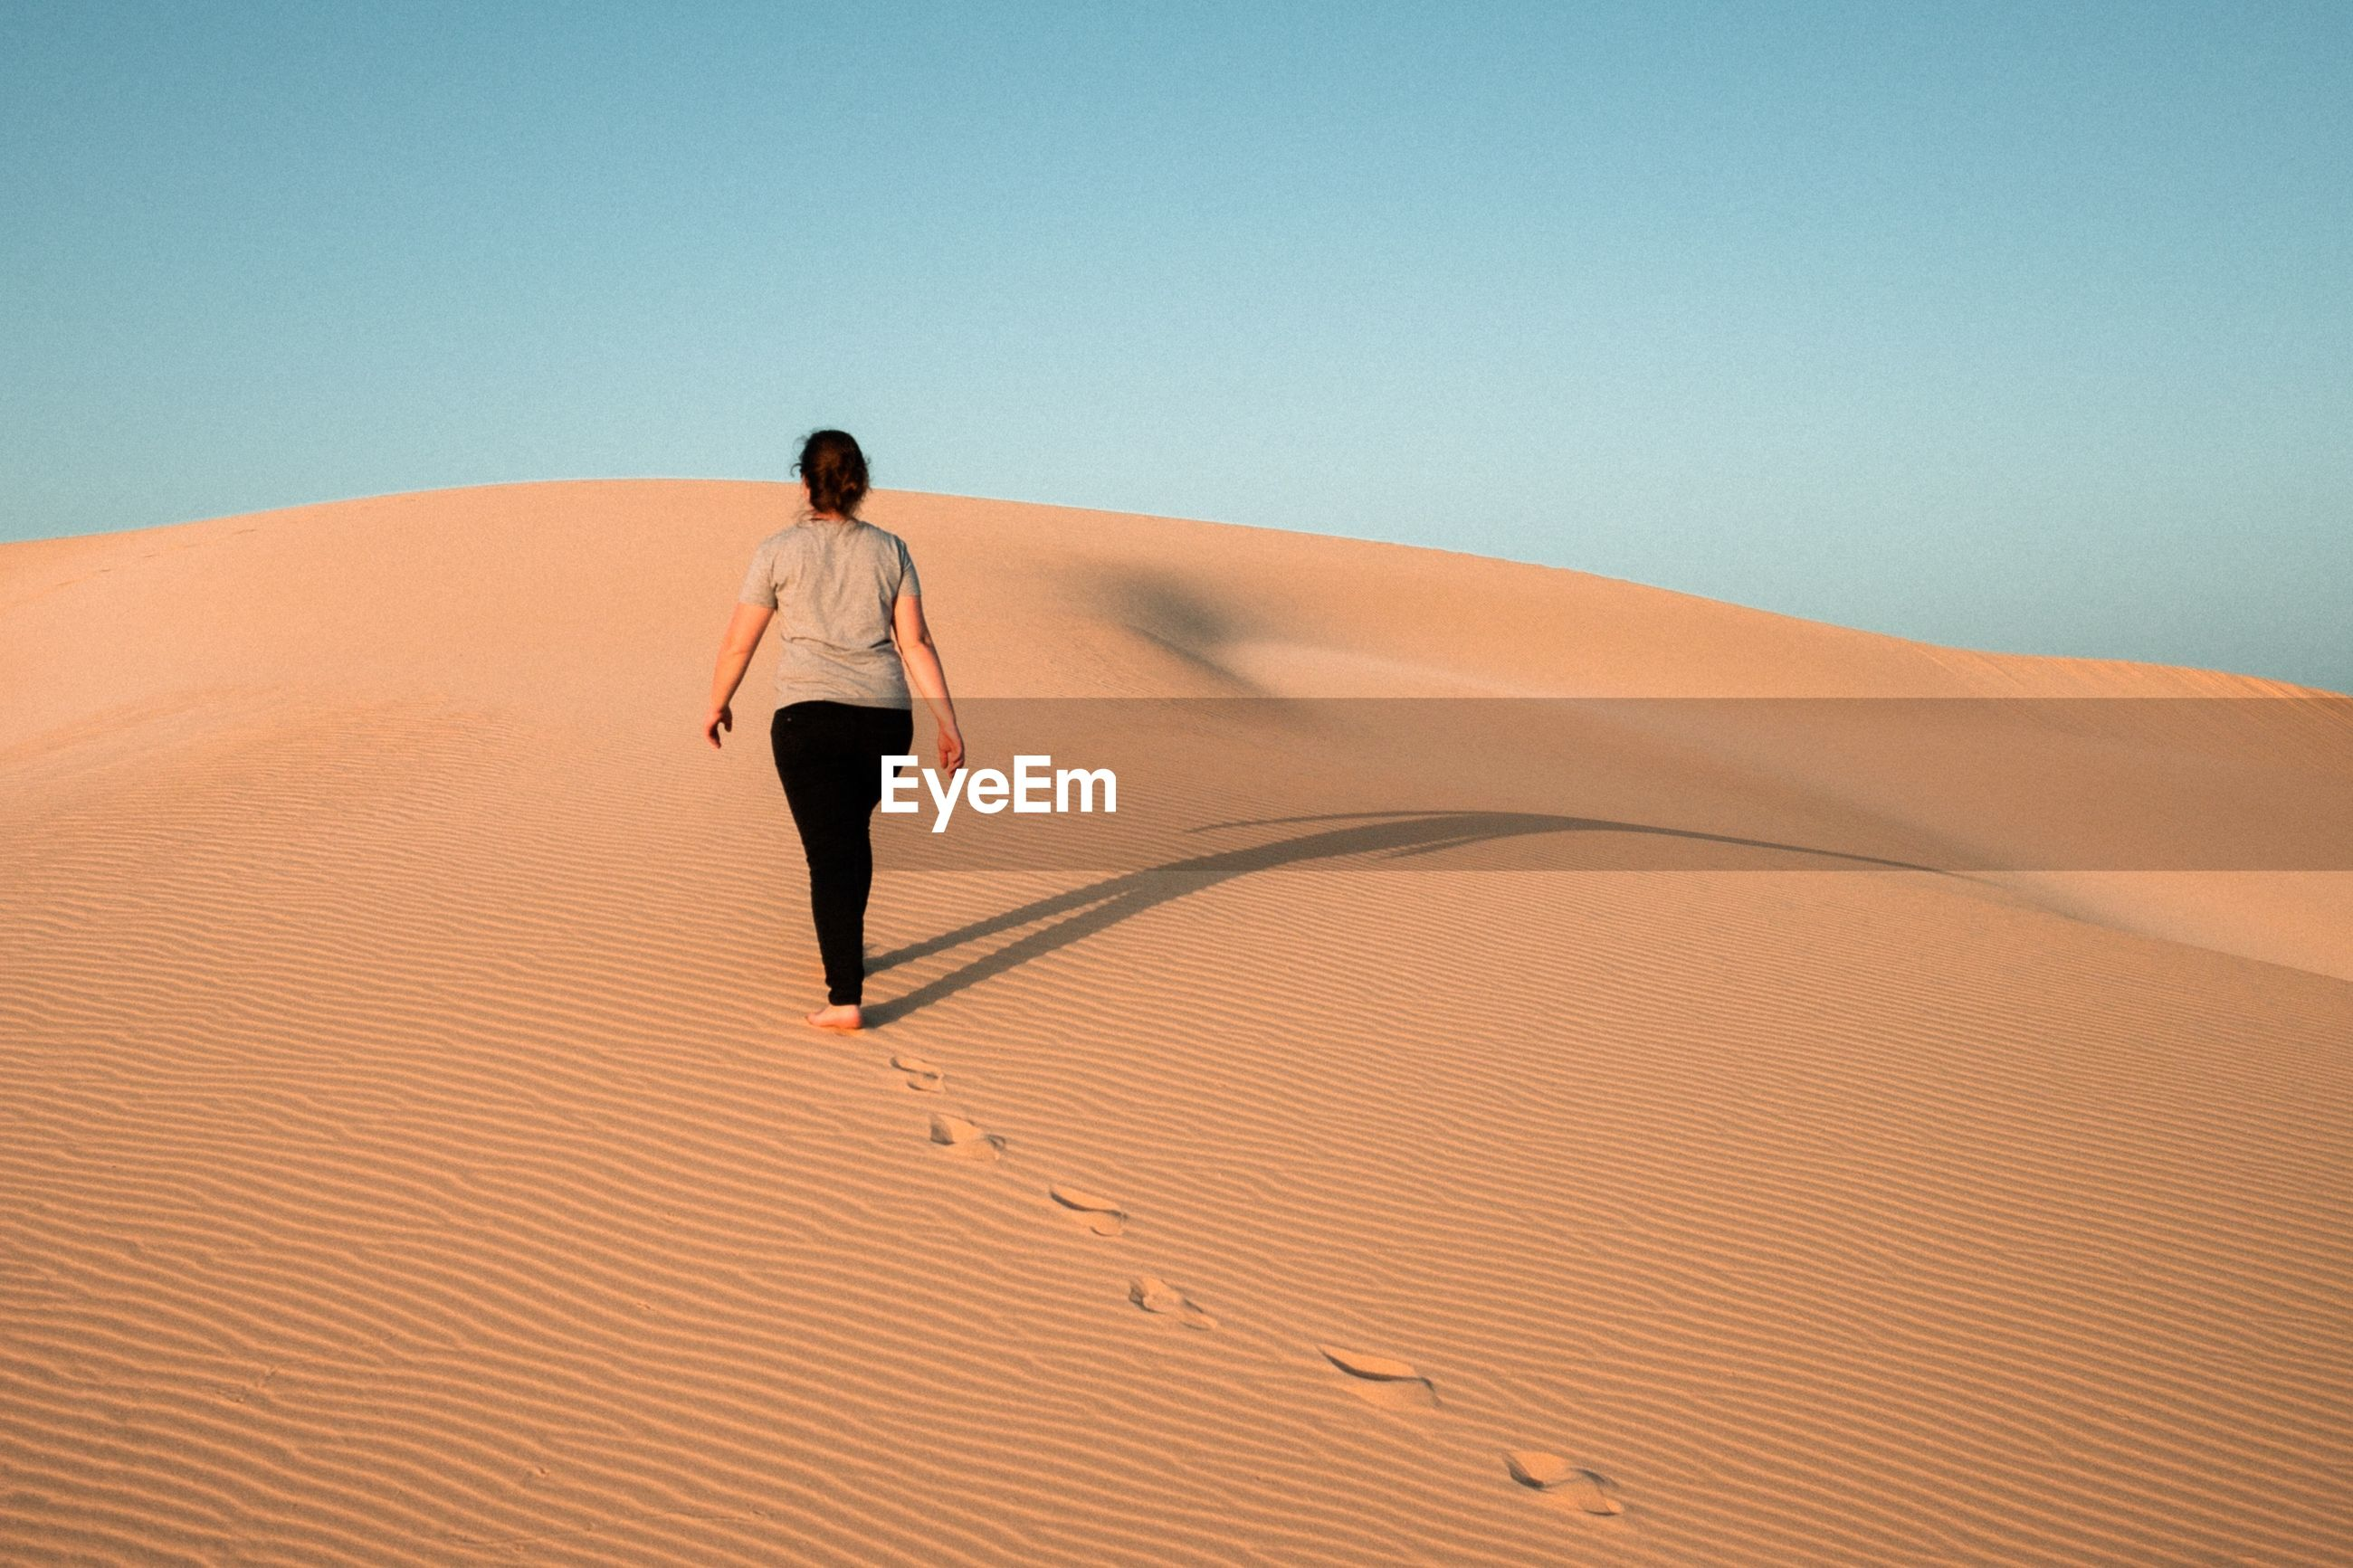 Rear view of woman walking on sand dune at desert against clear sky